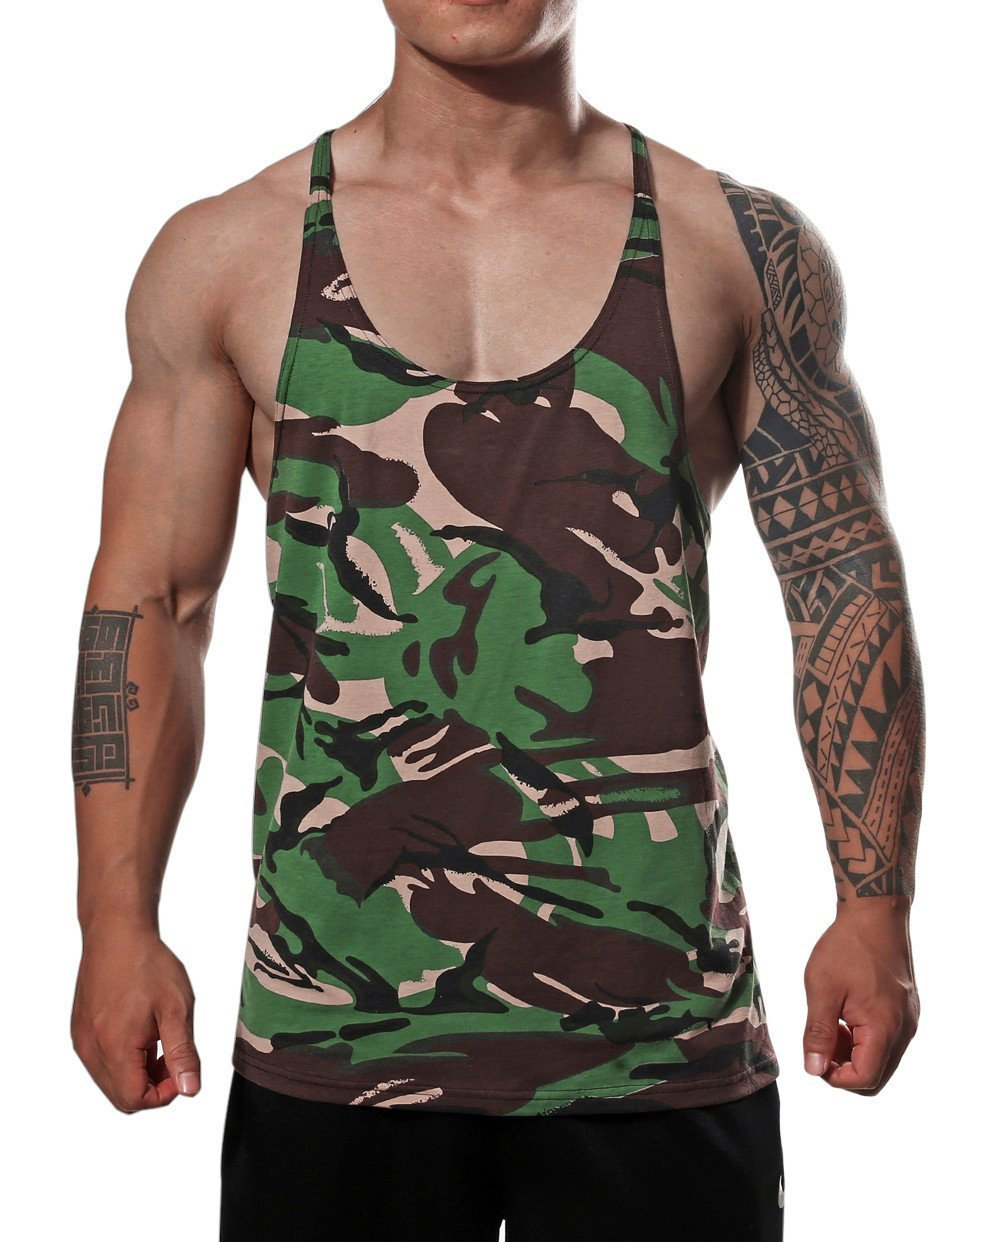 Mens Camouflage Gym Muscle Tank Top Bodybuilding Sports Fitness Lightweight Vest